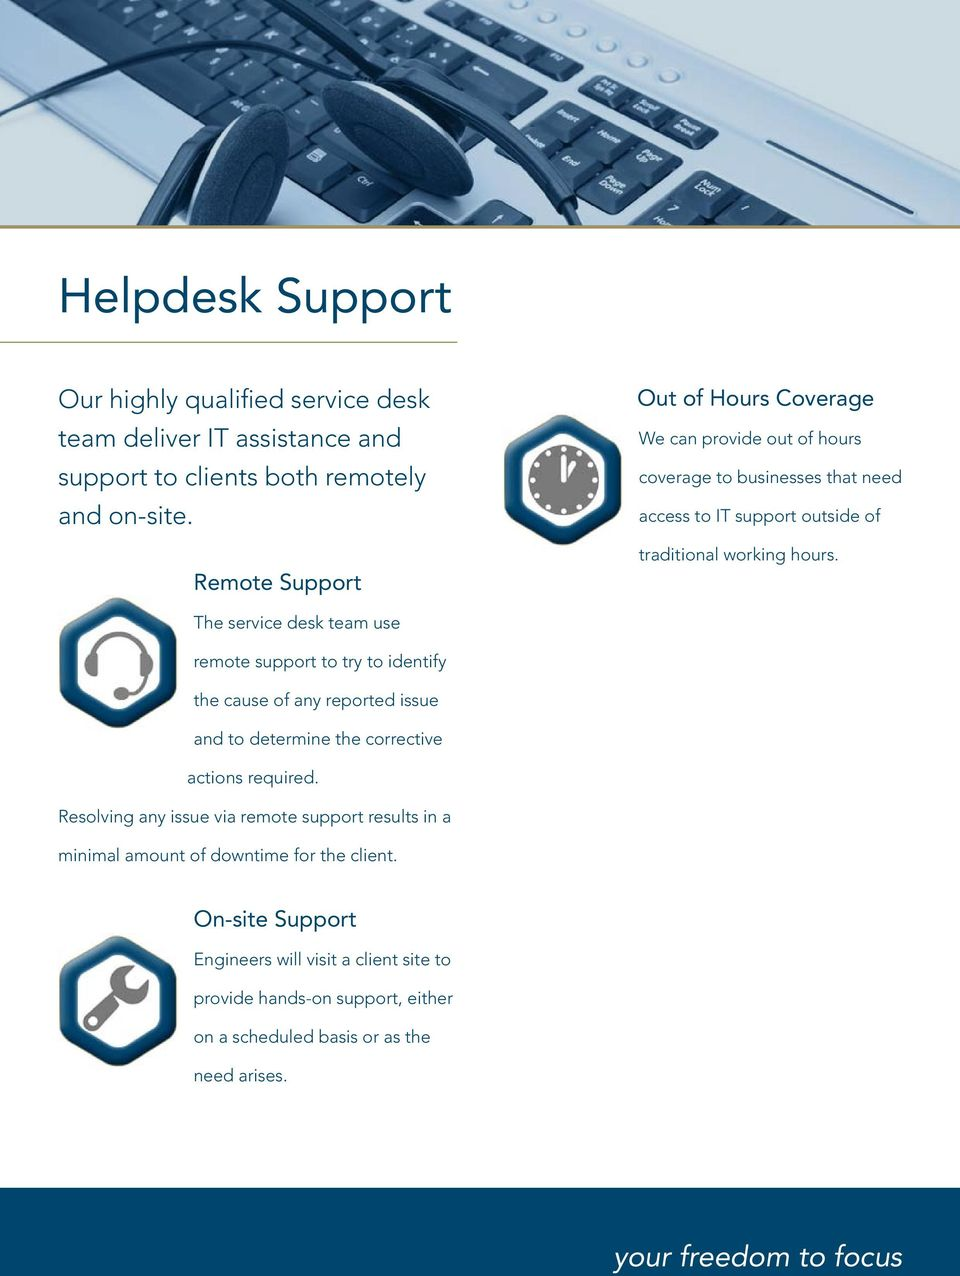 The service desk team use remote support to try to identify the cause of any reported issue and to determine the corrective actions required.